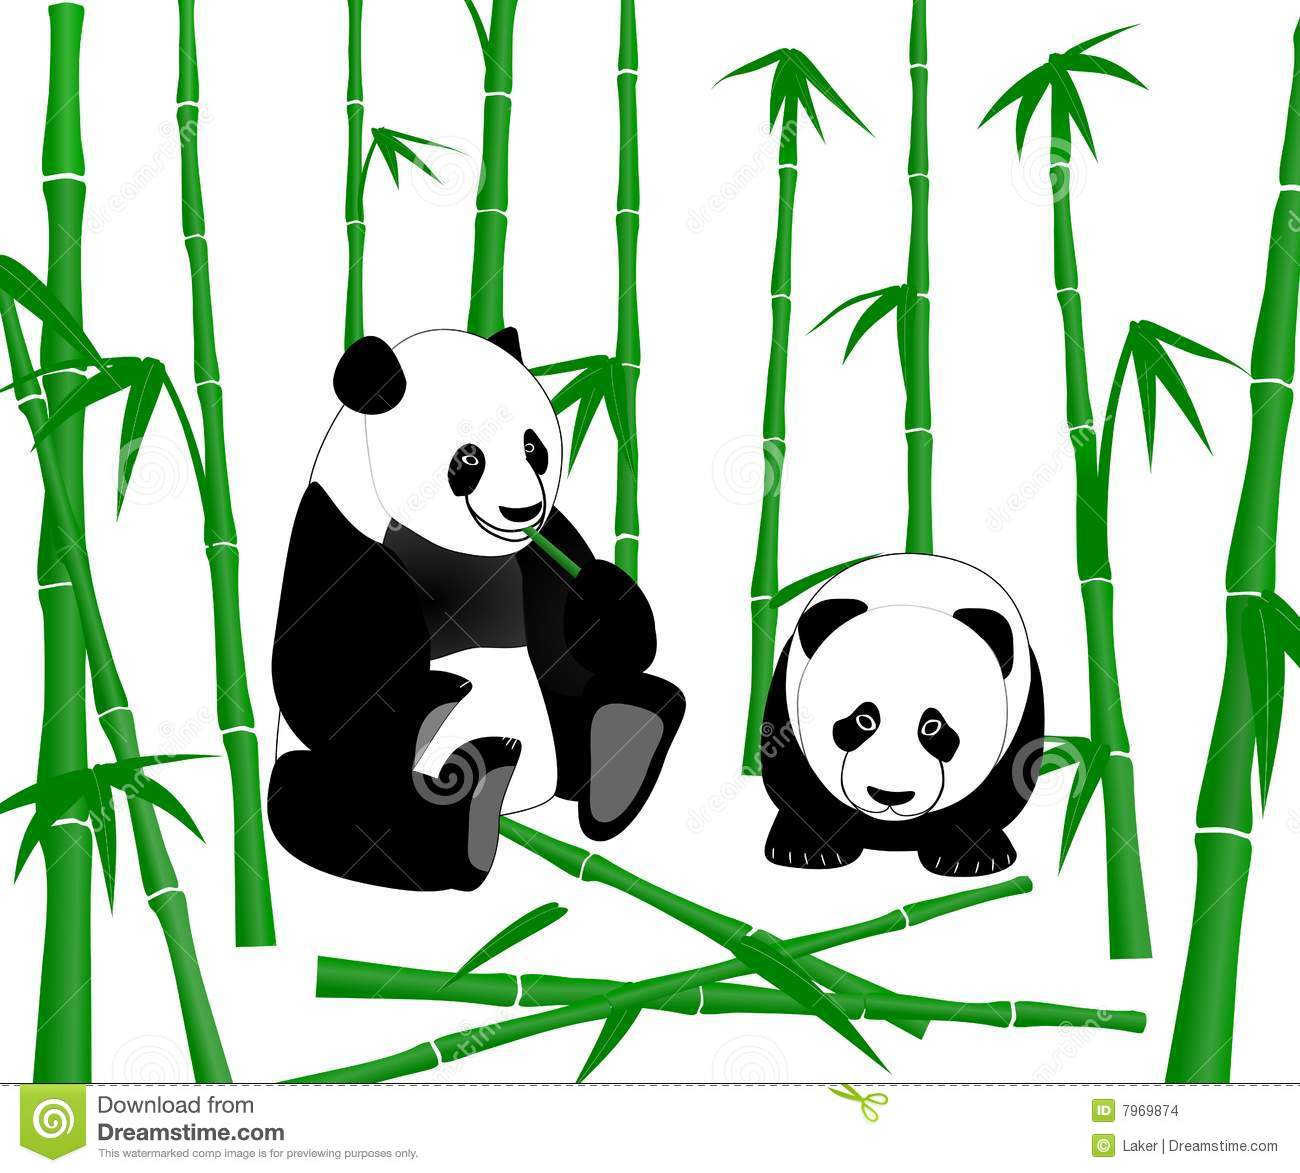 Stock Images Chinese Giant Panda Eating Bamboo Shoots Image7969874 on Flower Pie Chart